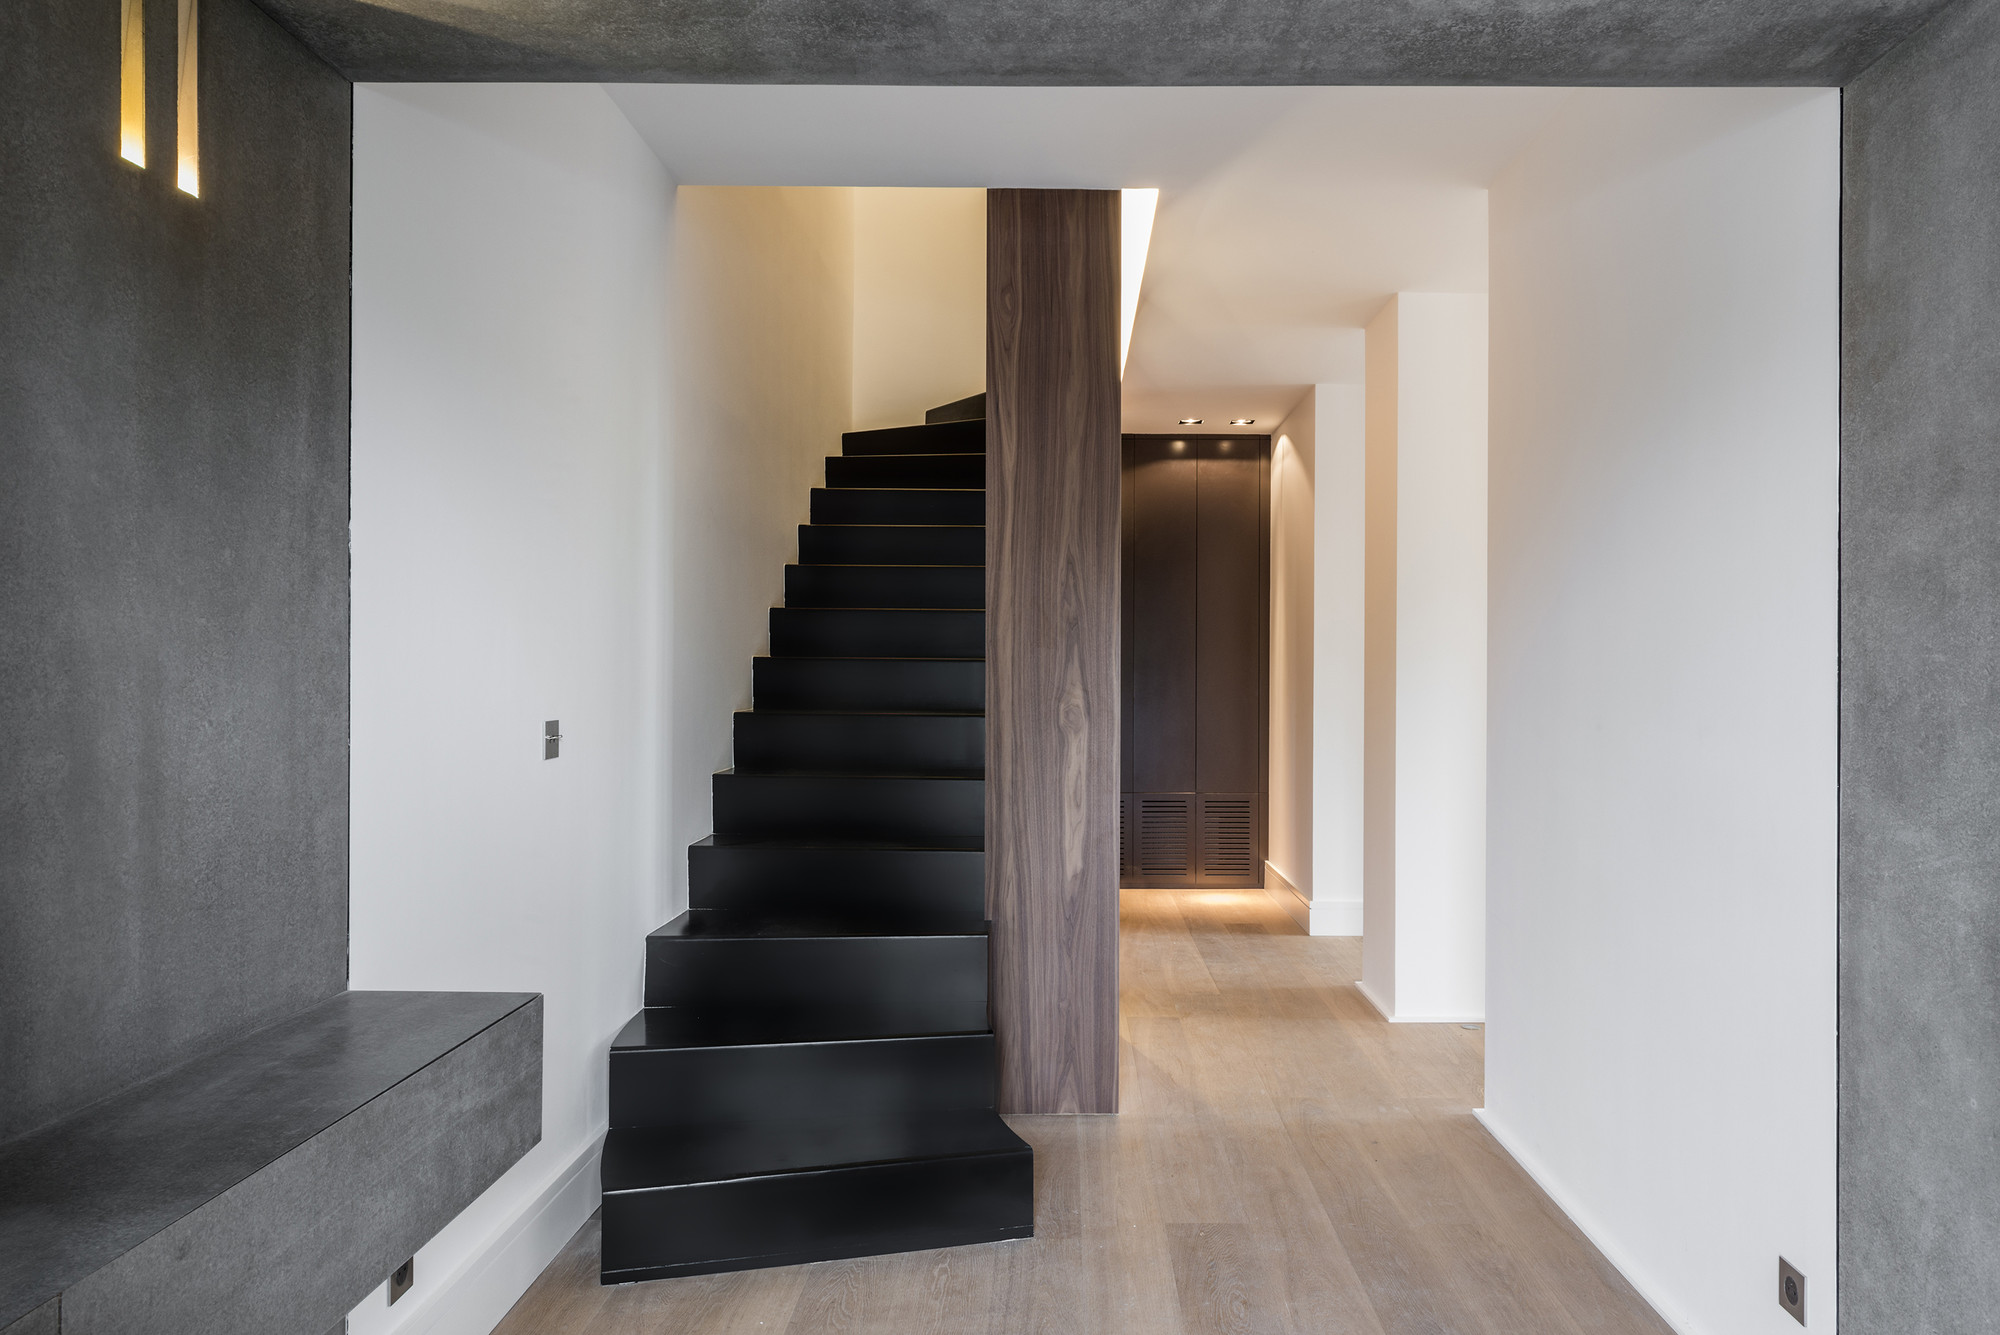 Farbauswahl Wandfarbe Villa B / Atelier Delphine Carrère | Archdaily